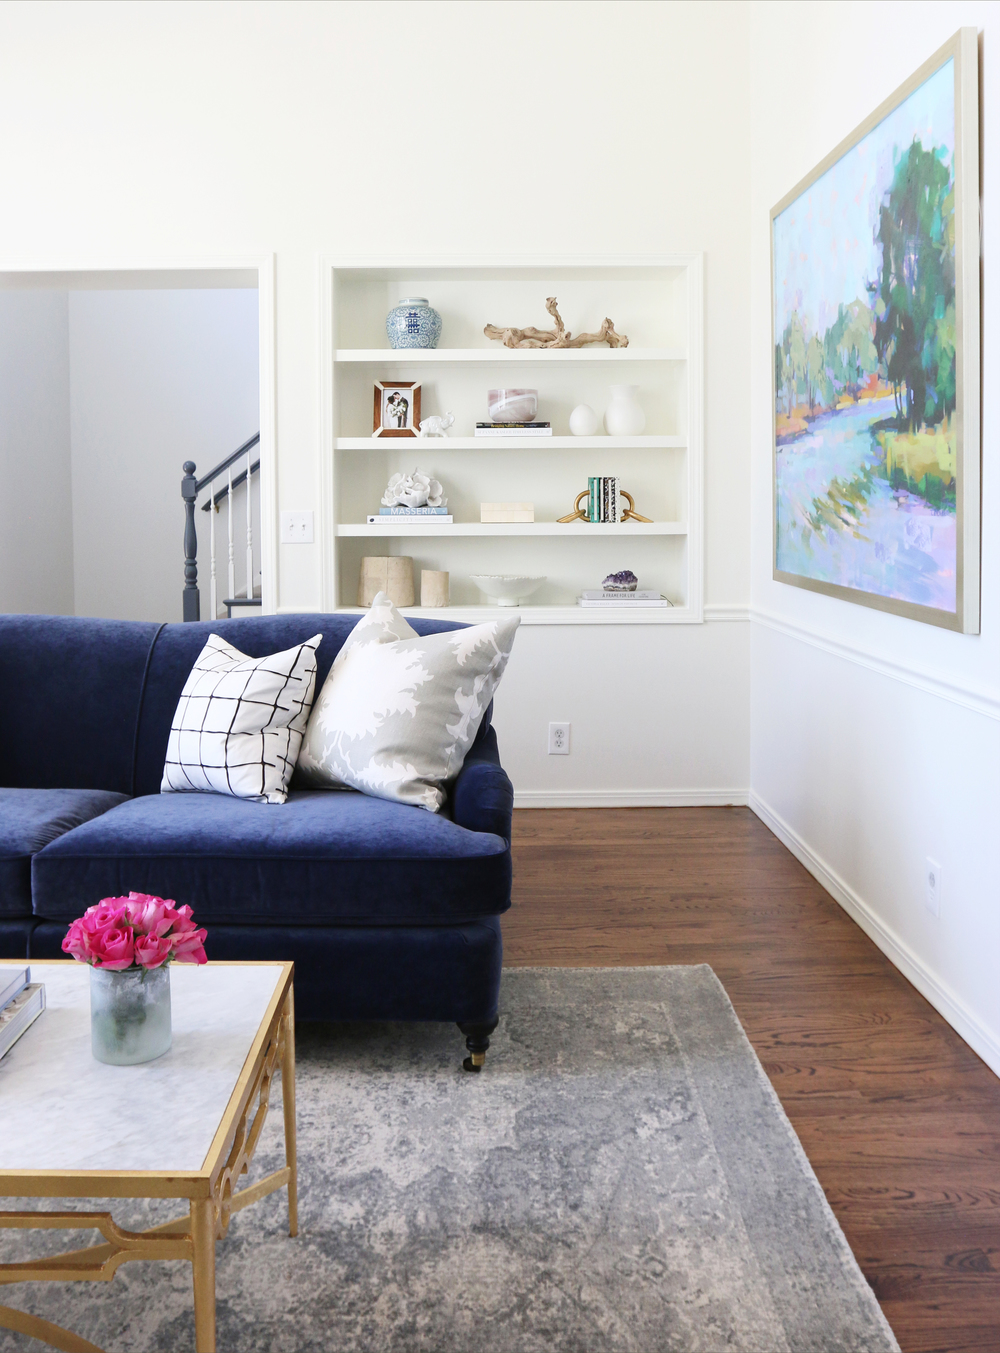 Living room with built-in book shelves